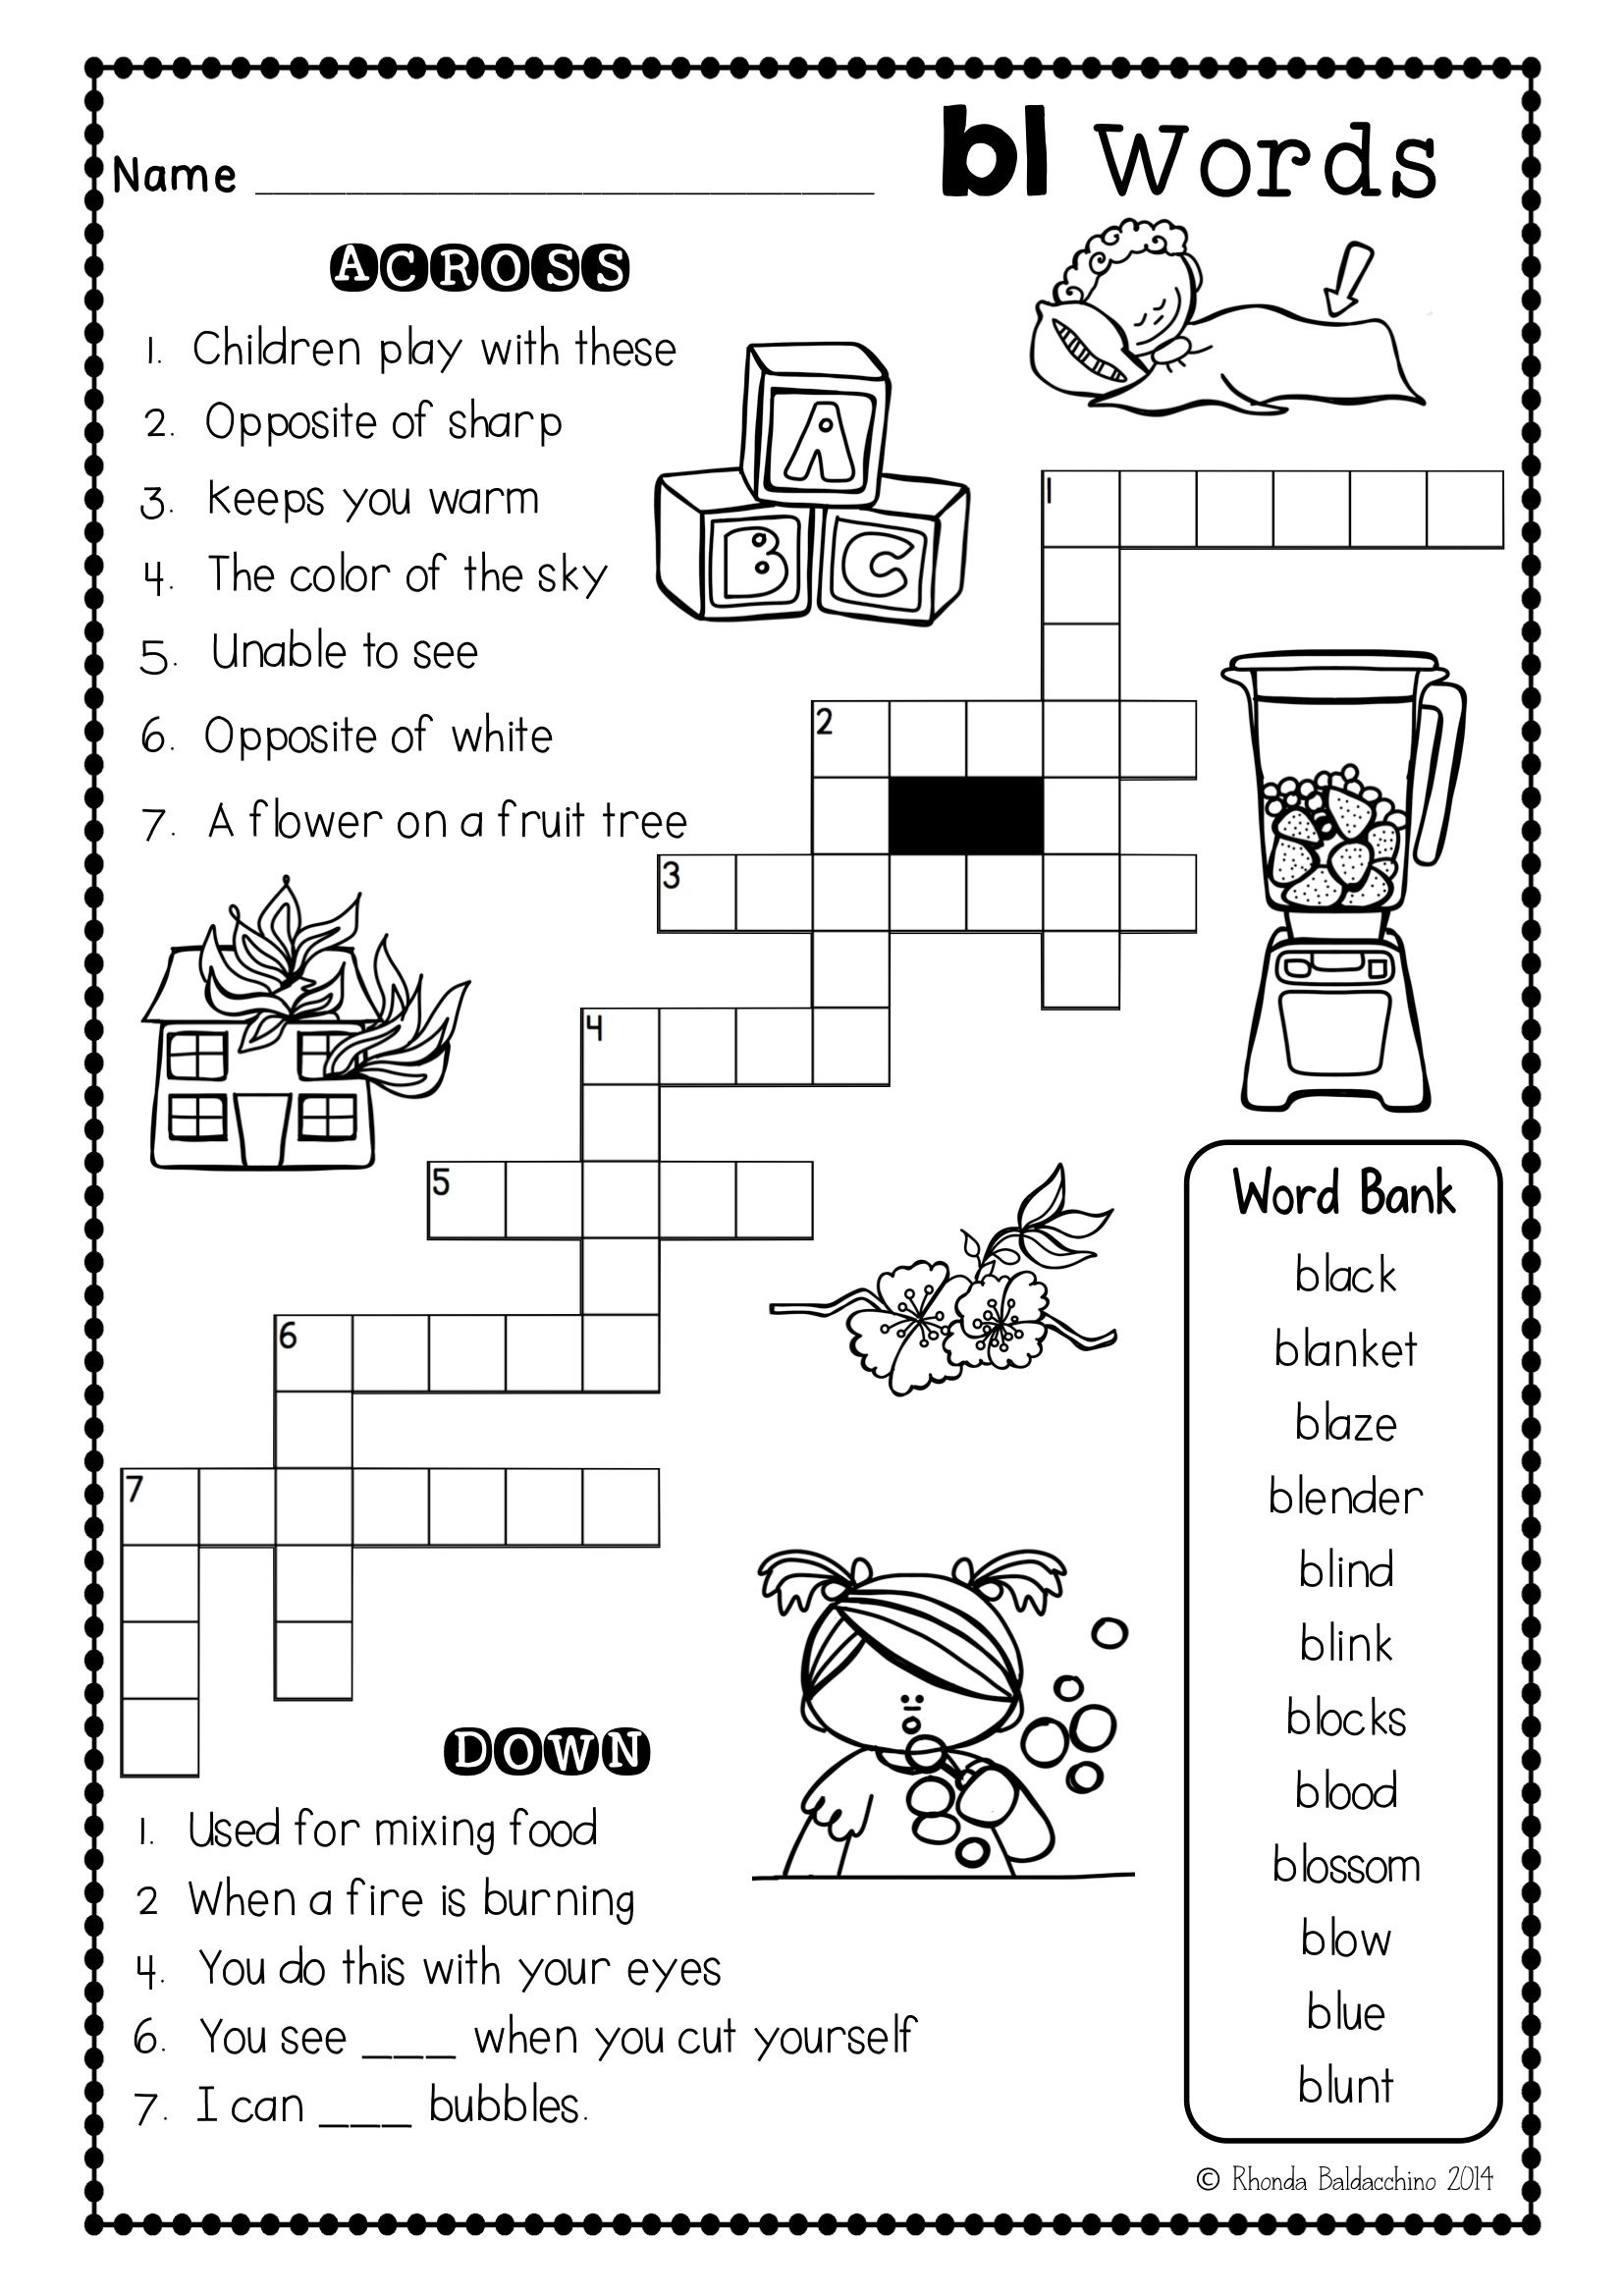 Big Reading  prehension For Beginner And Elementary Students besides Clipart Border Pictures moreover Fbc Dcd Bce Fc F Ab likewise Skip Count To  plete Patterns likewise Xlg. on kindergarten printable sheets for writing